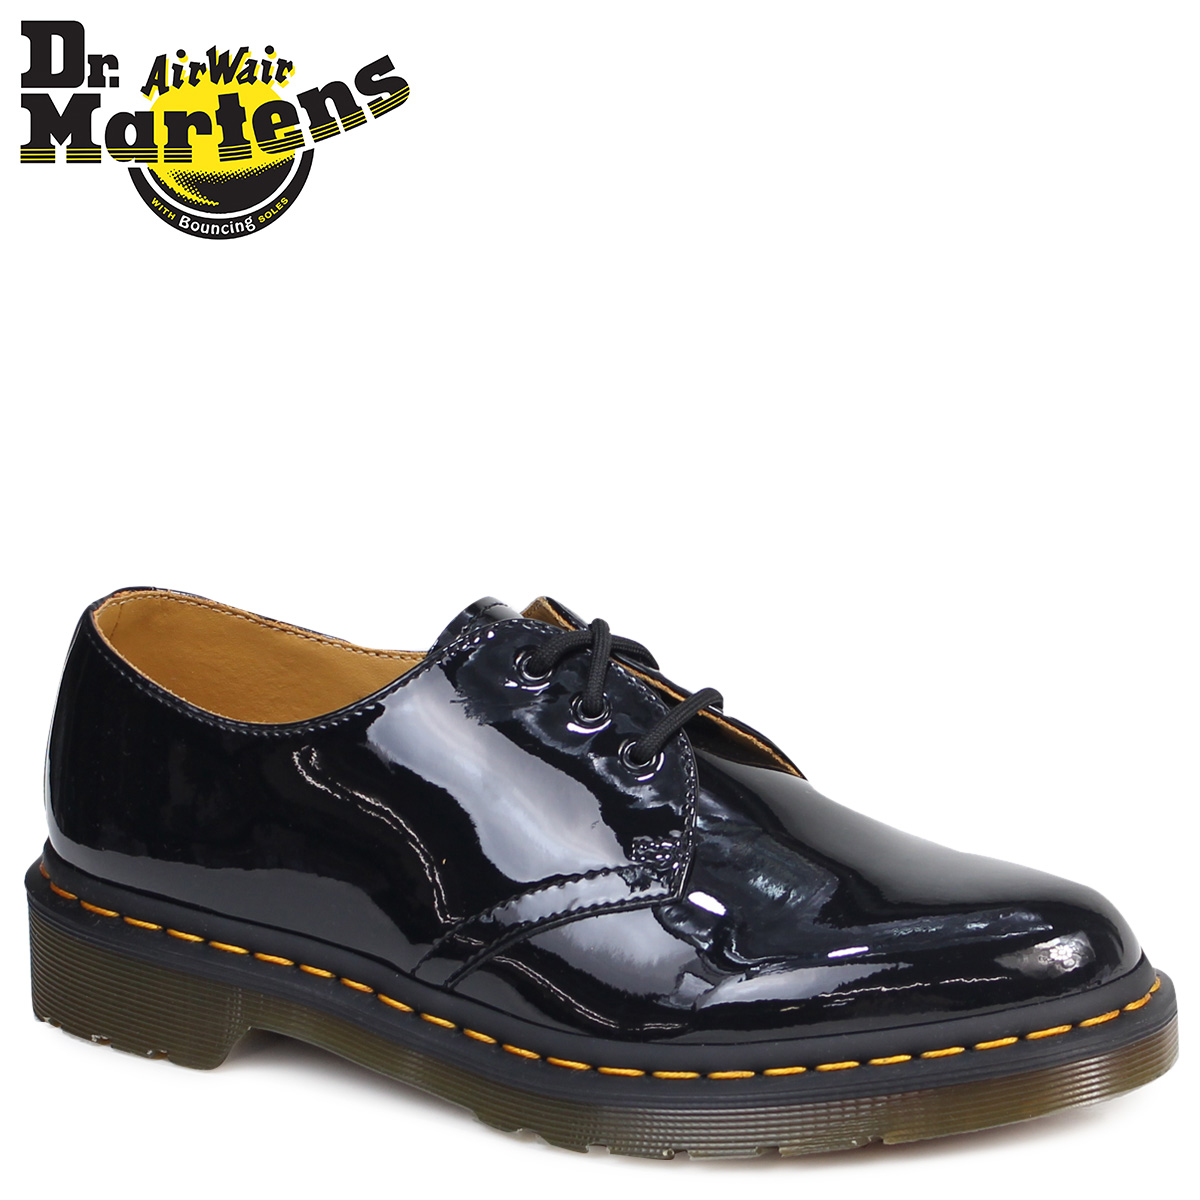 578c32c197 Dr. Martens Dr.Martens 1461 WOMENS 3 Hall shoes R10084001 MODERN CLASSICS  patent leather ...